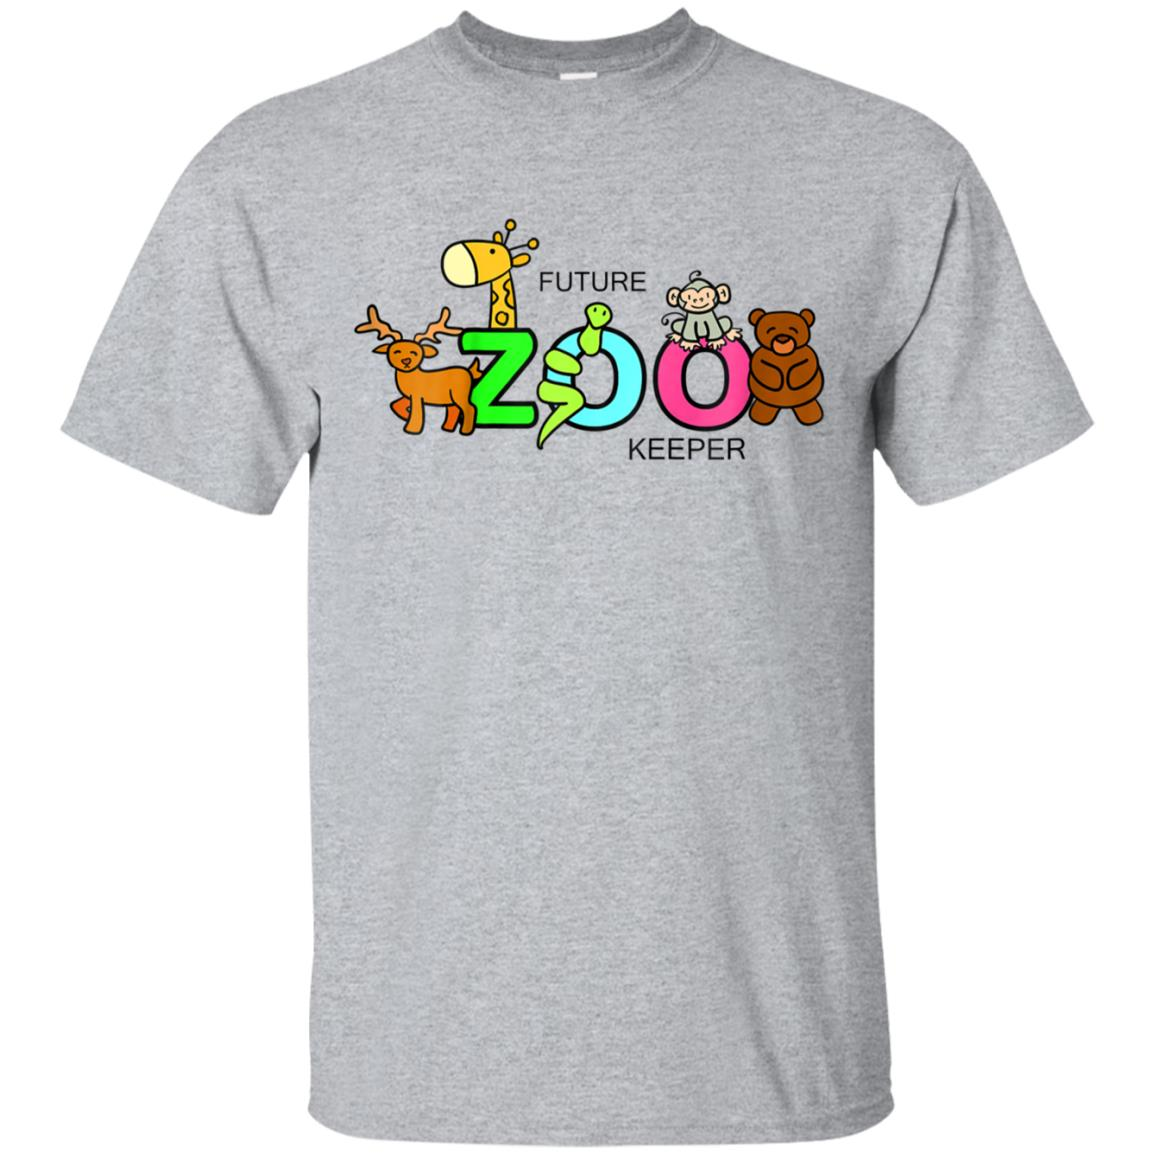 Kids Future Zoo Keeper African Safari Boys Girls Shirt Gift 99promocode